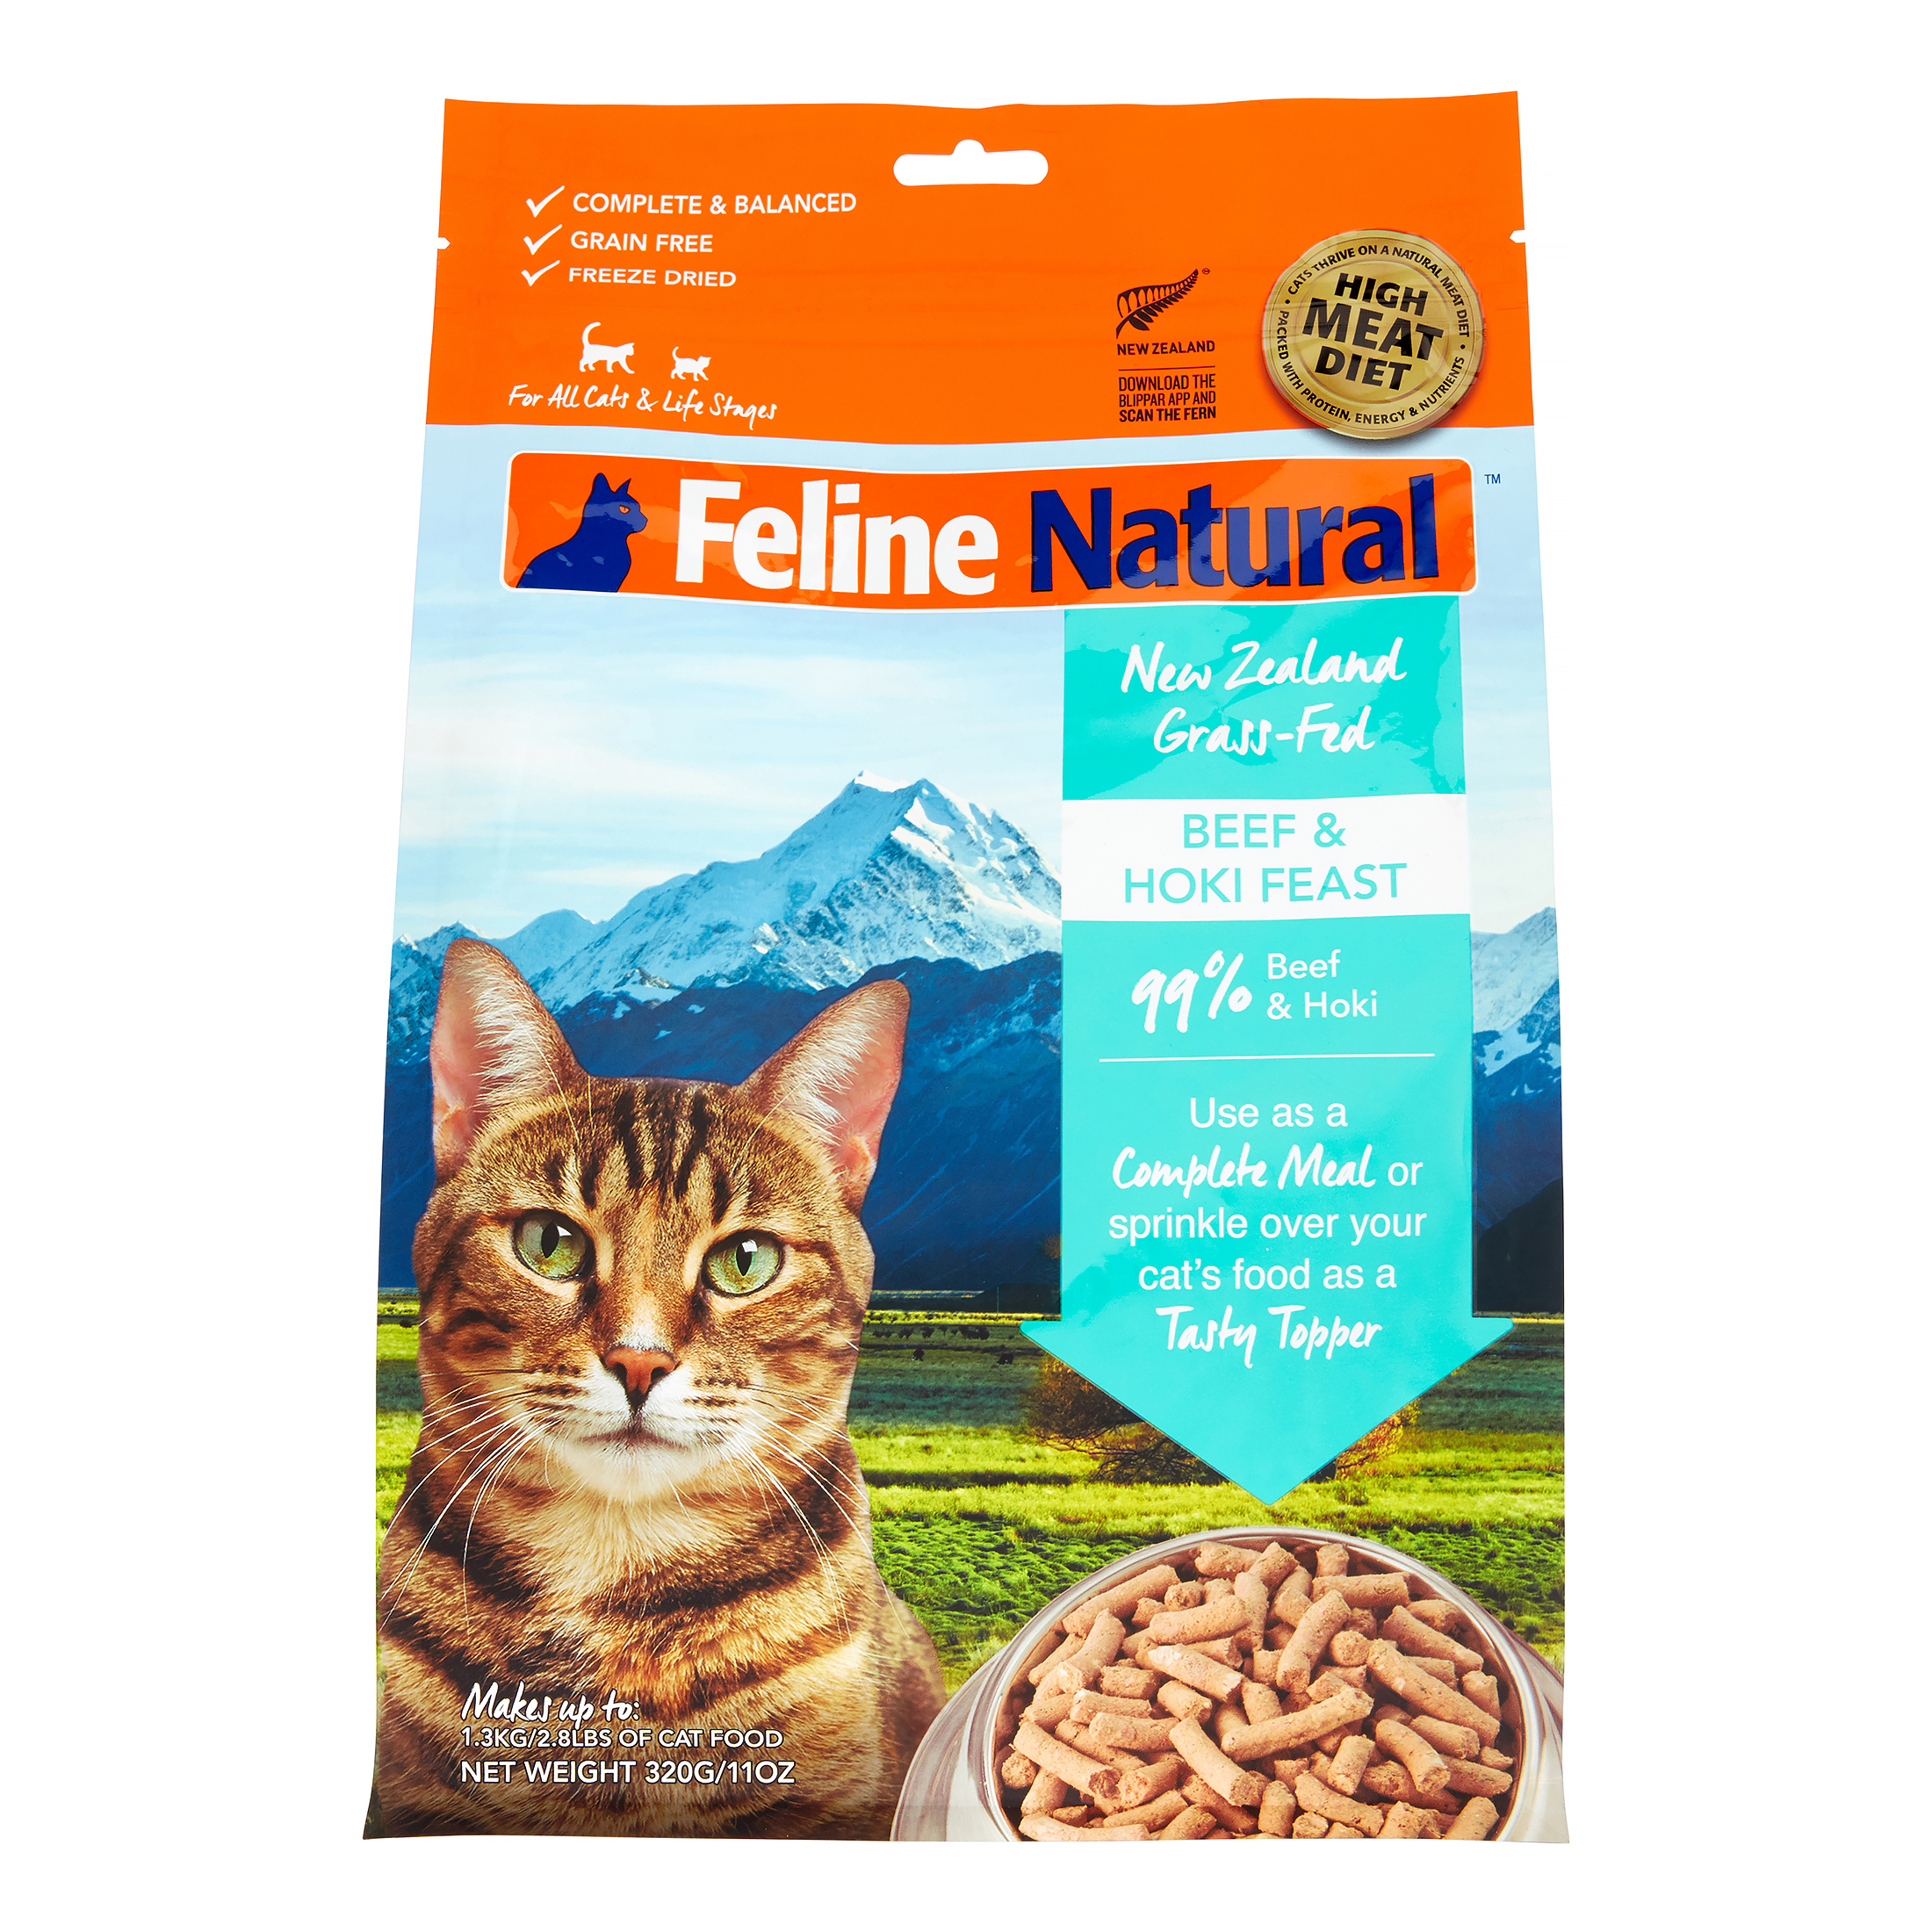 K9 Natural Feline Natural Freeze Dried Beef and Hoki Feast, 11 Oz by Mars Petcare